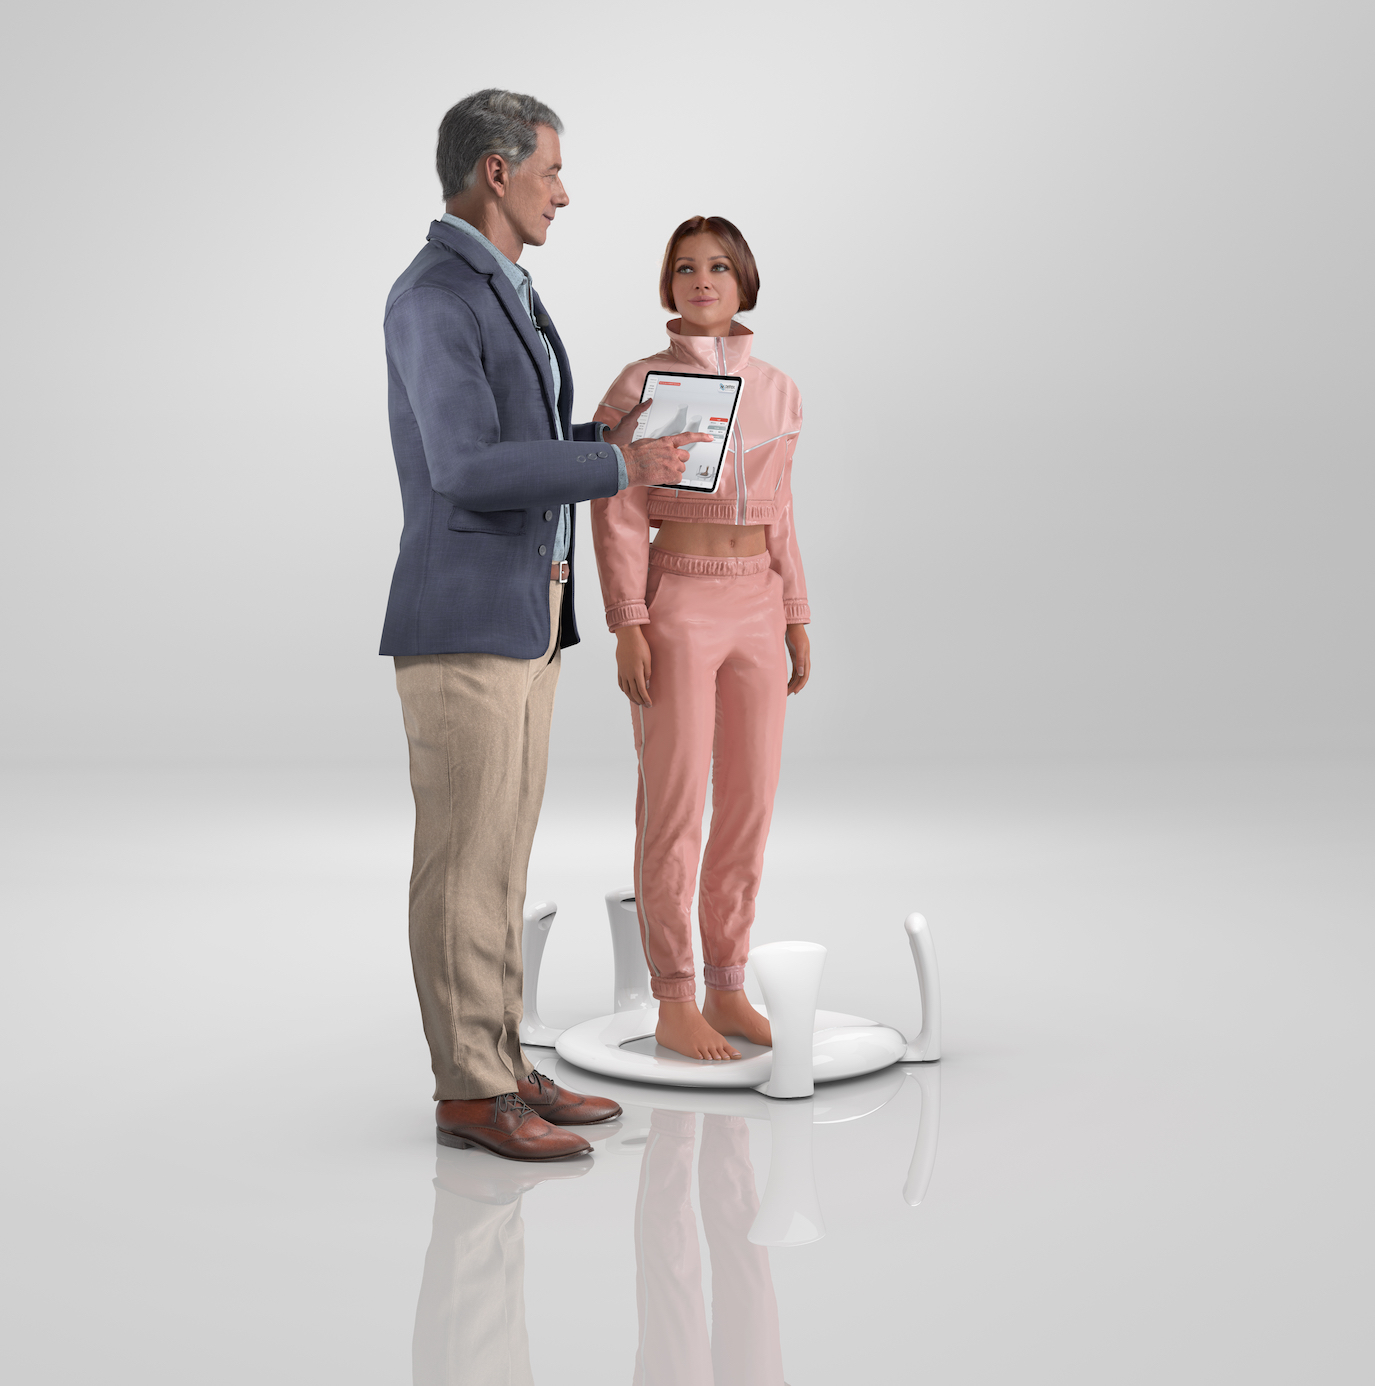 Aetrex Worldwide, a developer of foot scanning technology, and a seller of orthotics and comfort and wellness footwear, has unveiled Albert 3DFit, a 3D foot scanner that can calculate customers' 3D foot measurements in less than 10 seconds with accuracy of up to 1 millimeter.